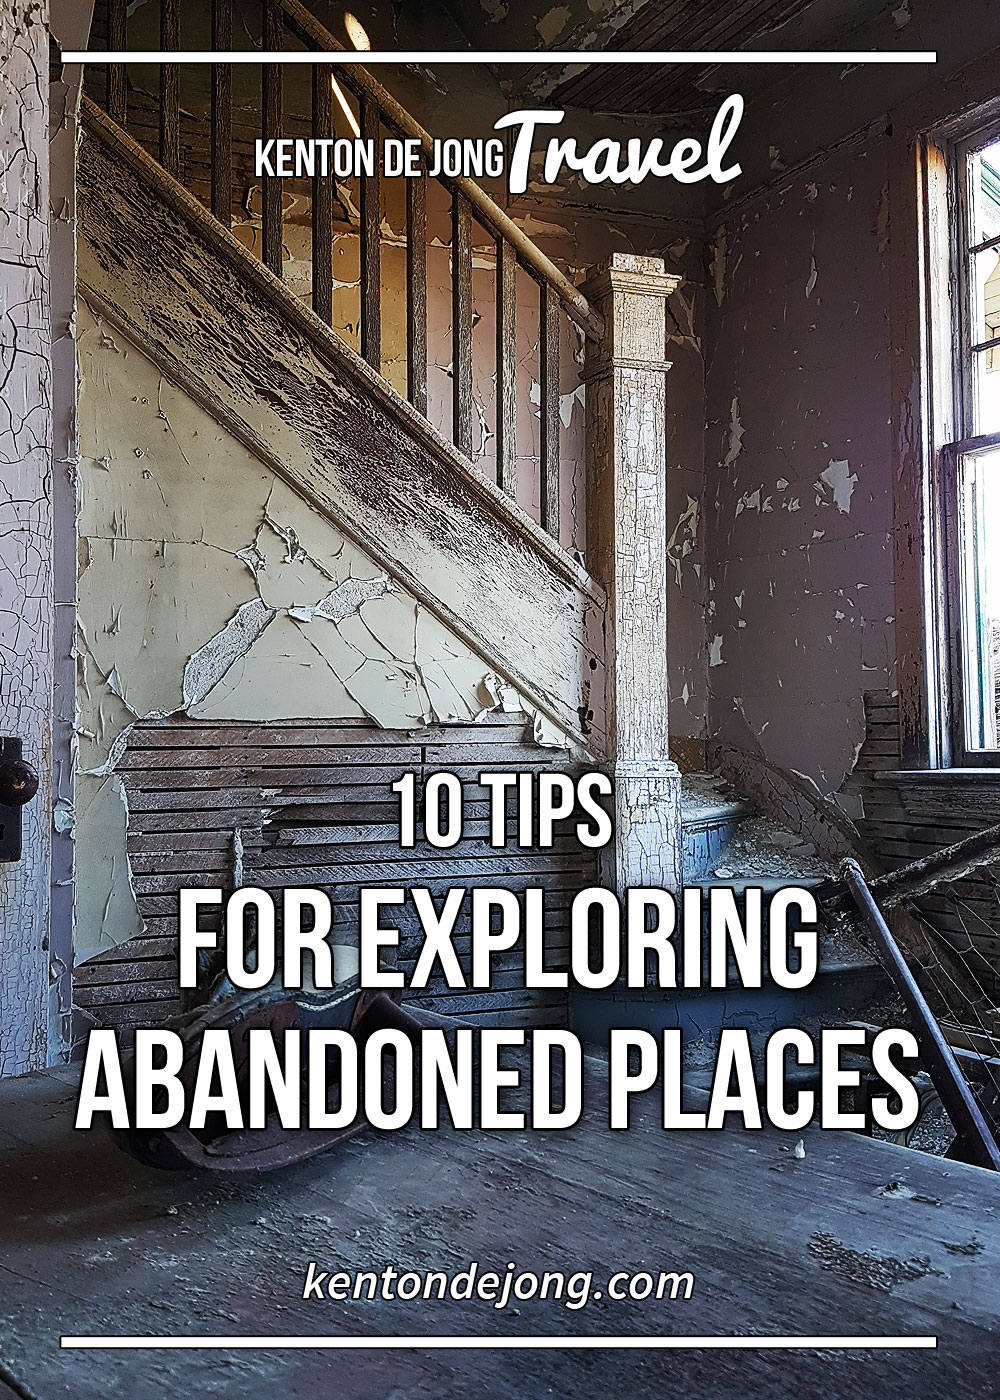 10 Tips for Exploring Abandoned Places